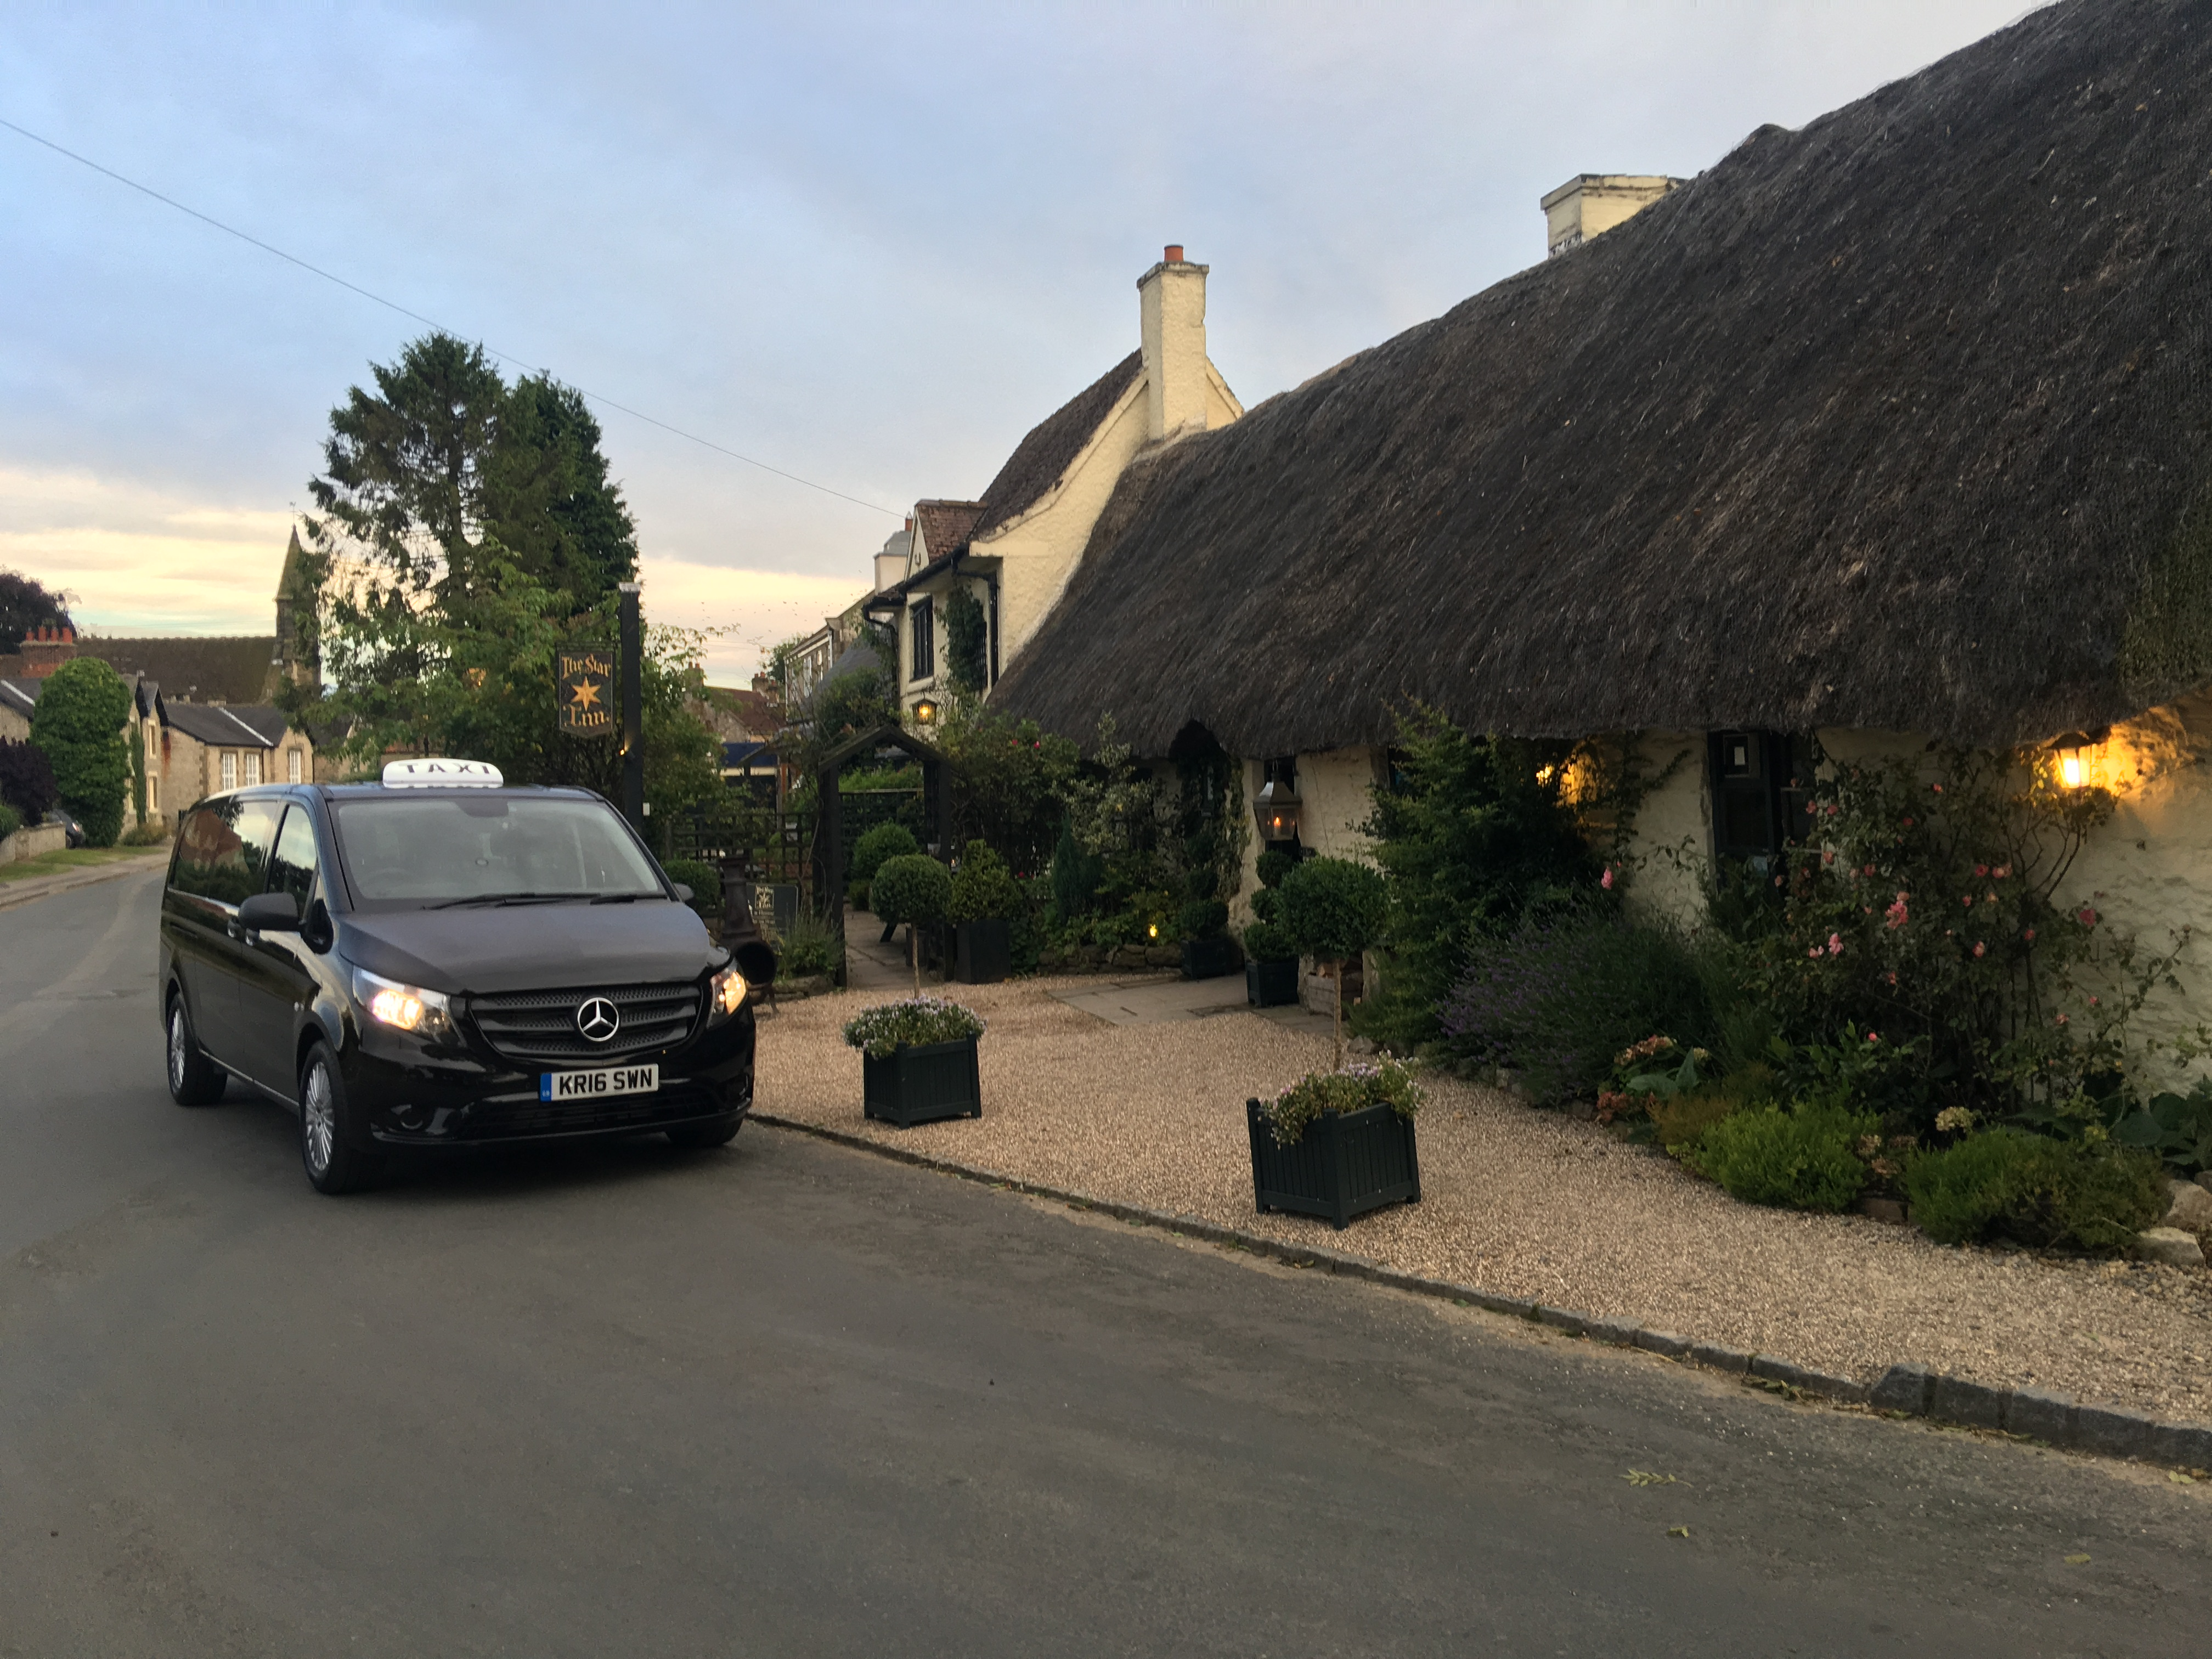 Mercedes V Class outside the Star Inn at Harome